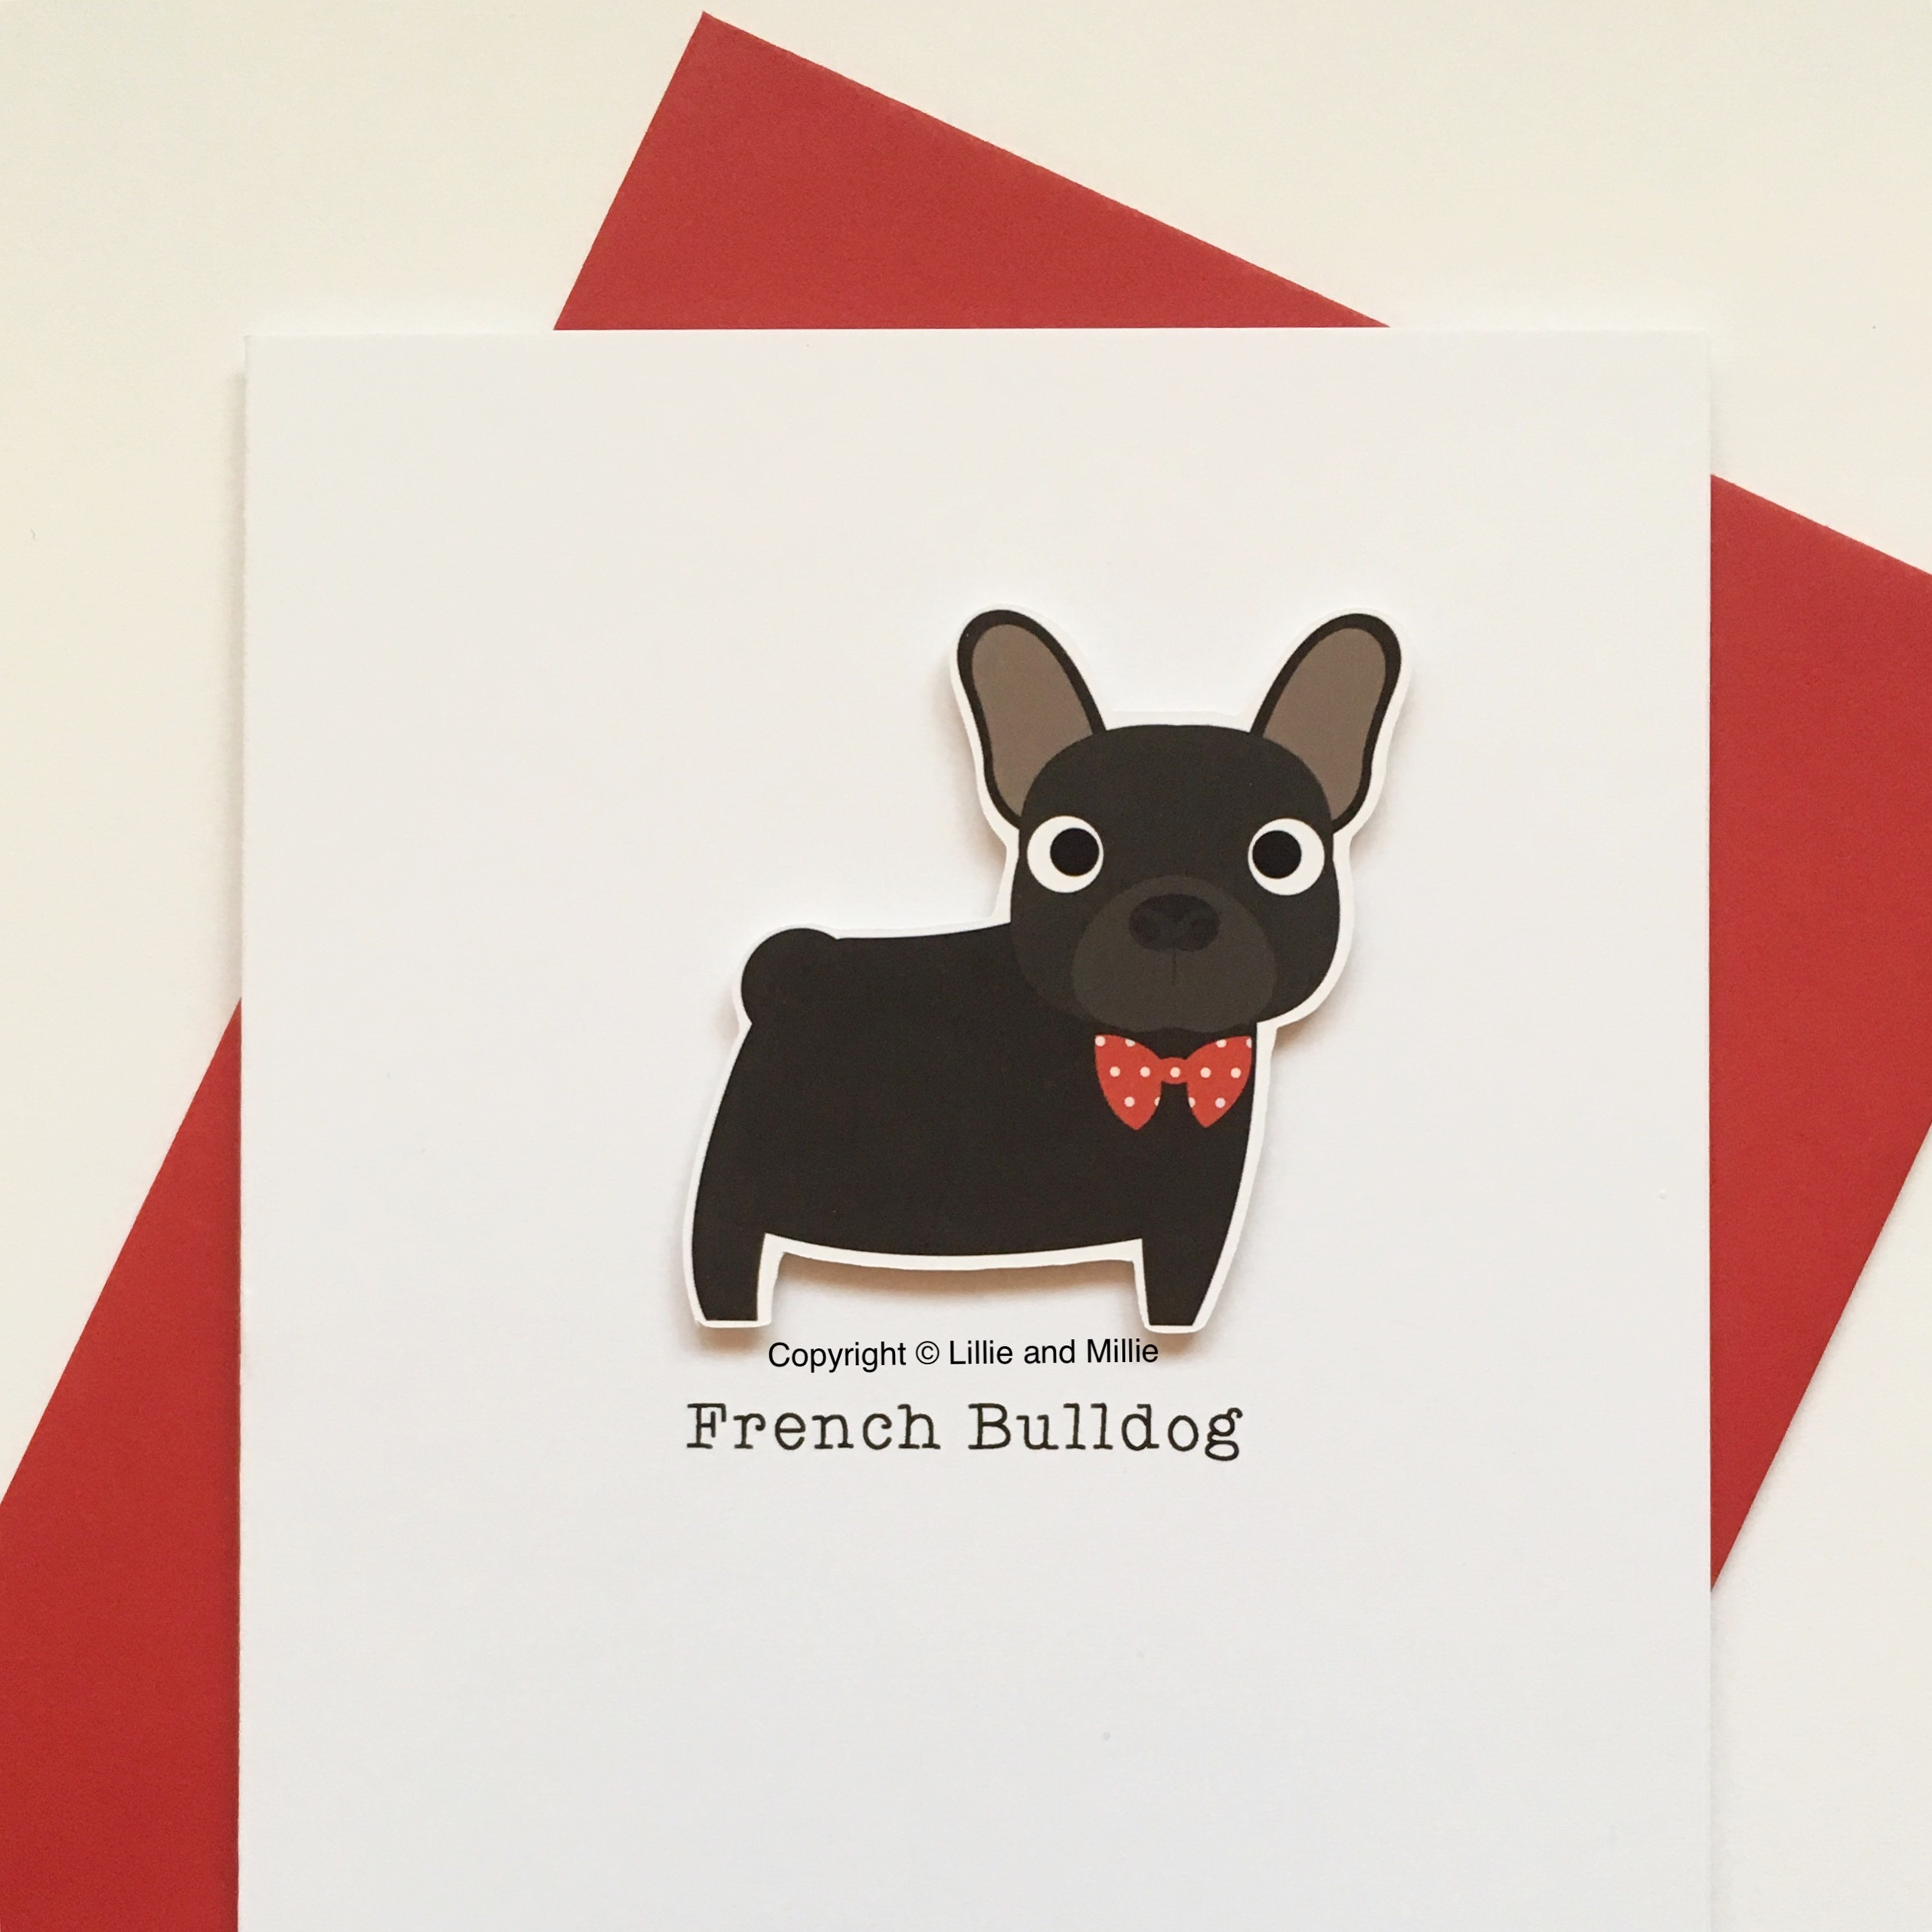 French Bulldog Dog Greetings Card